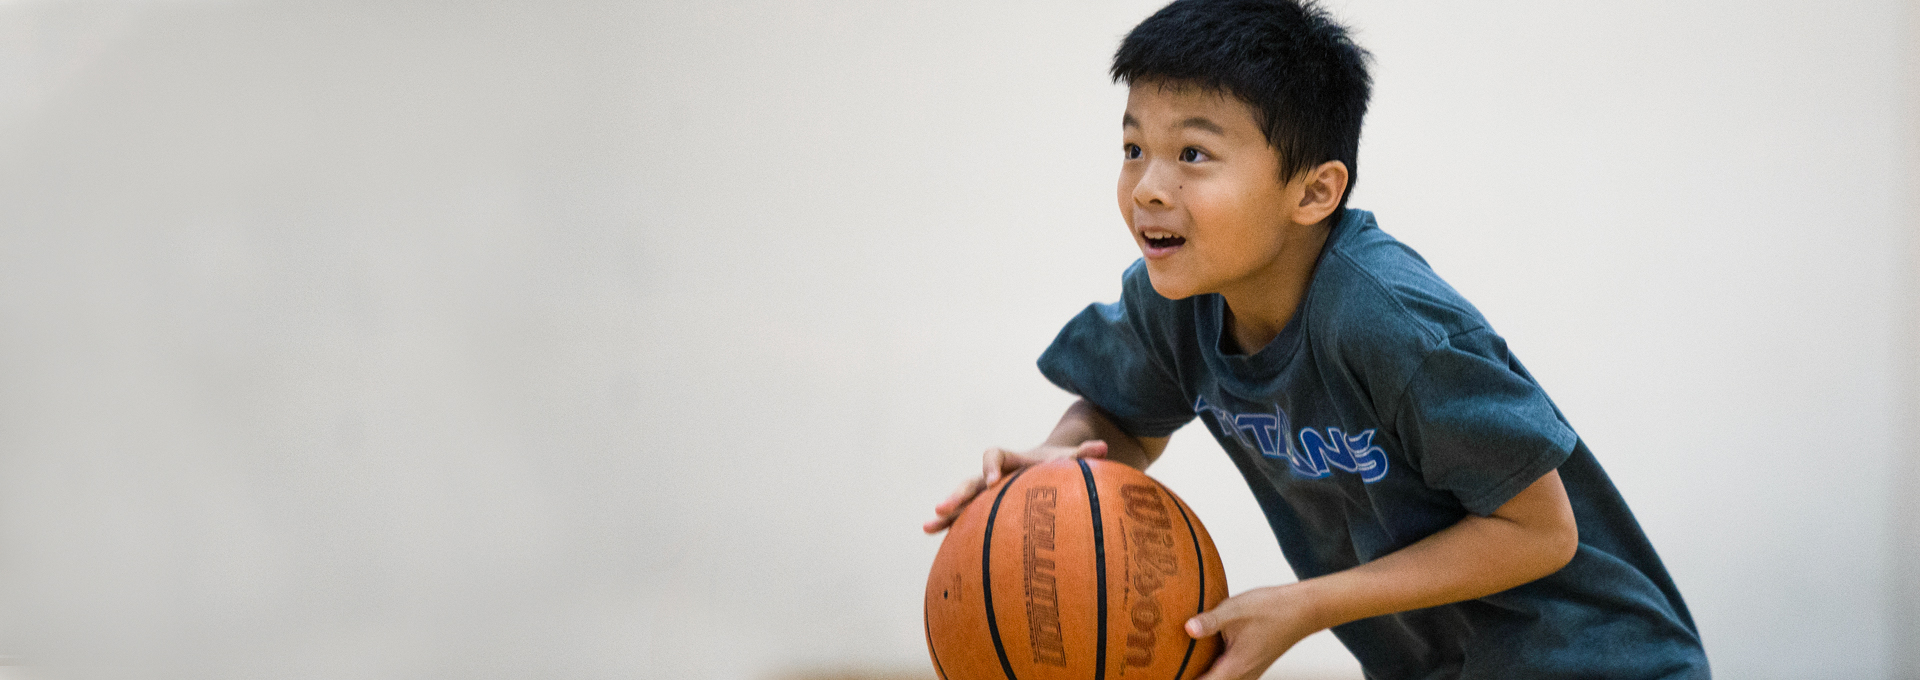 Child shooting basketball